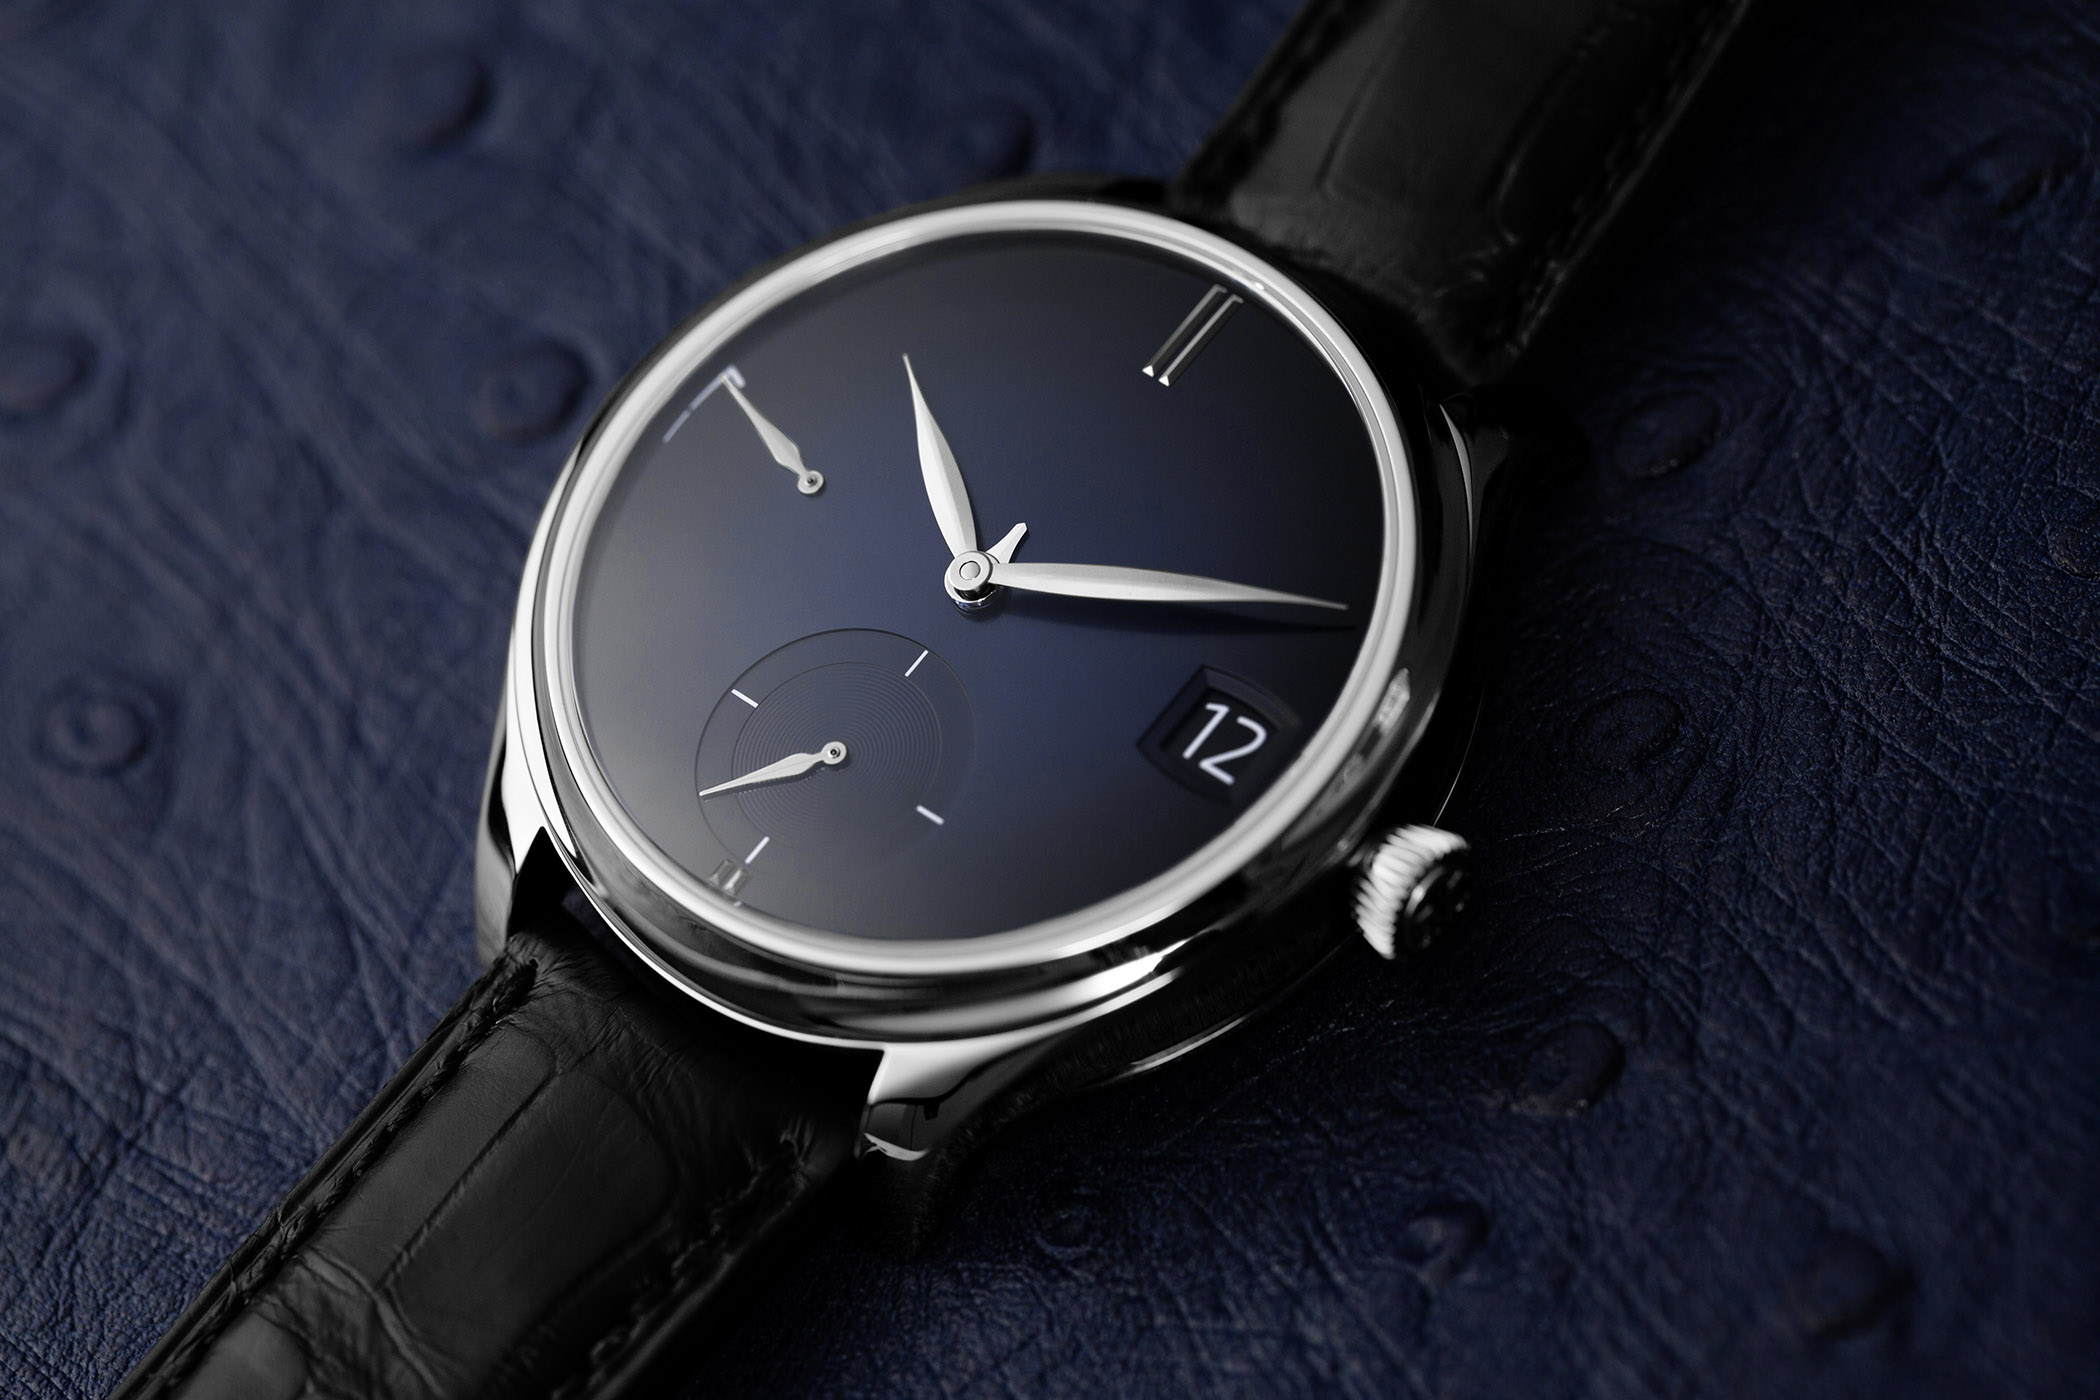 Introducing the H. Moser & Cie Endeavour Perpetual Calendar Purity